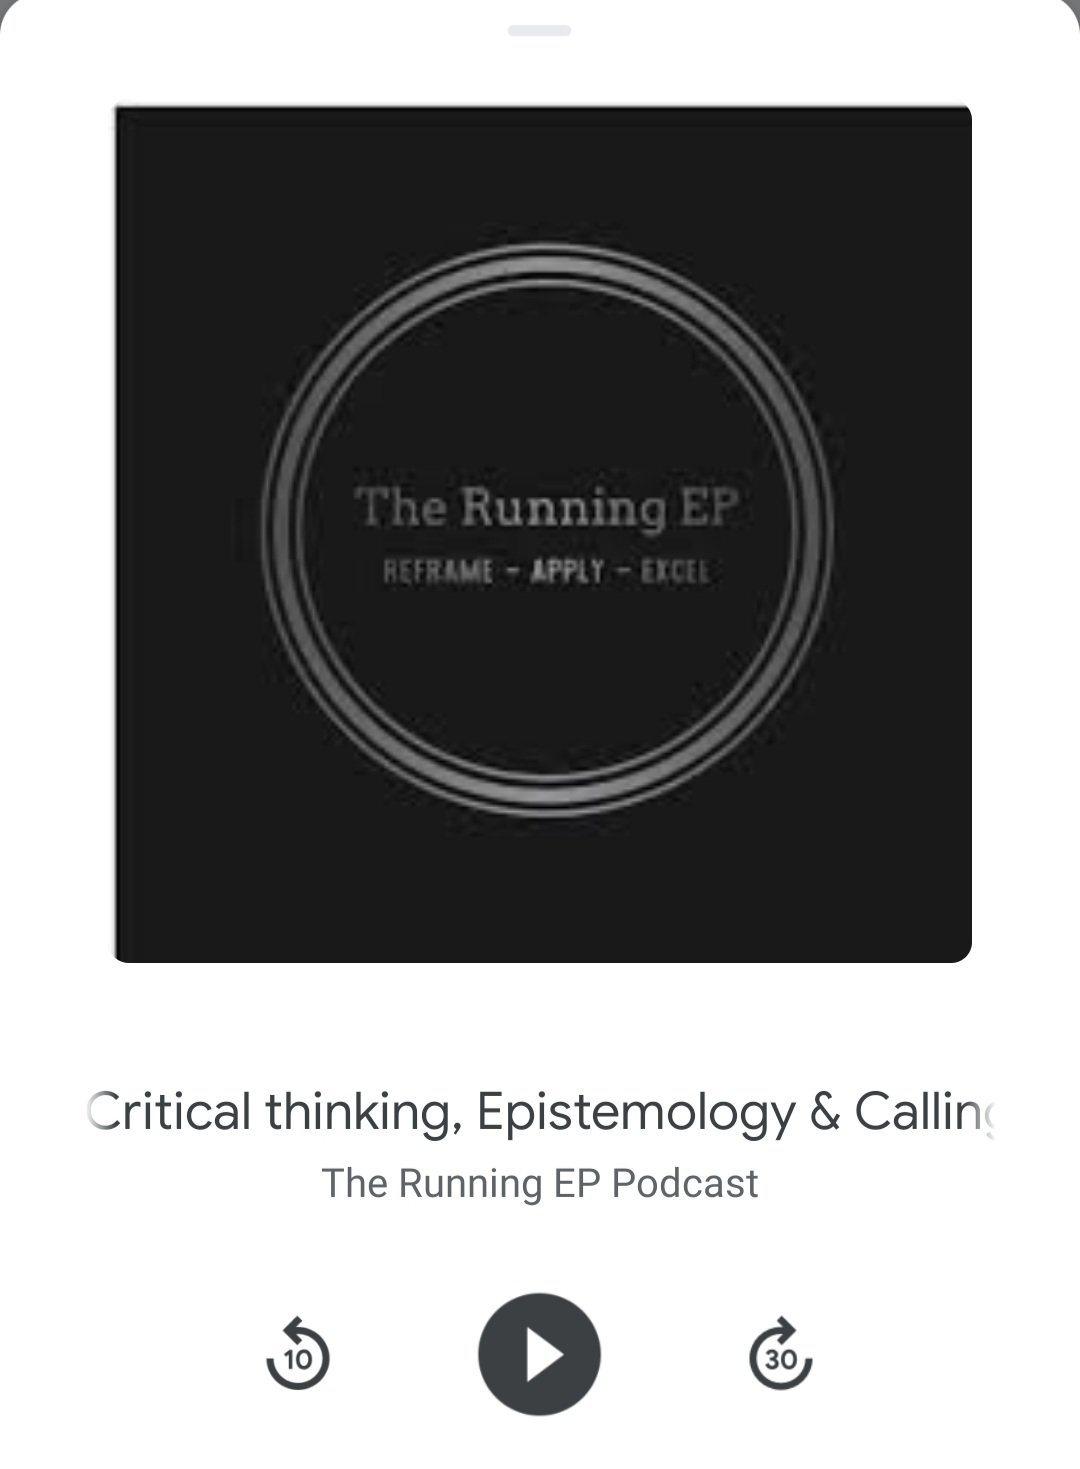 Critical Thinking, Epistemology and Calling out BS in the Scientific Literature – Running EP Podcast